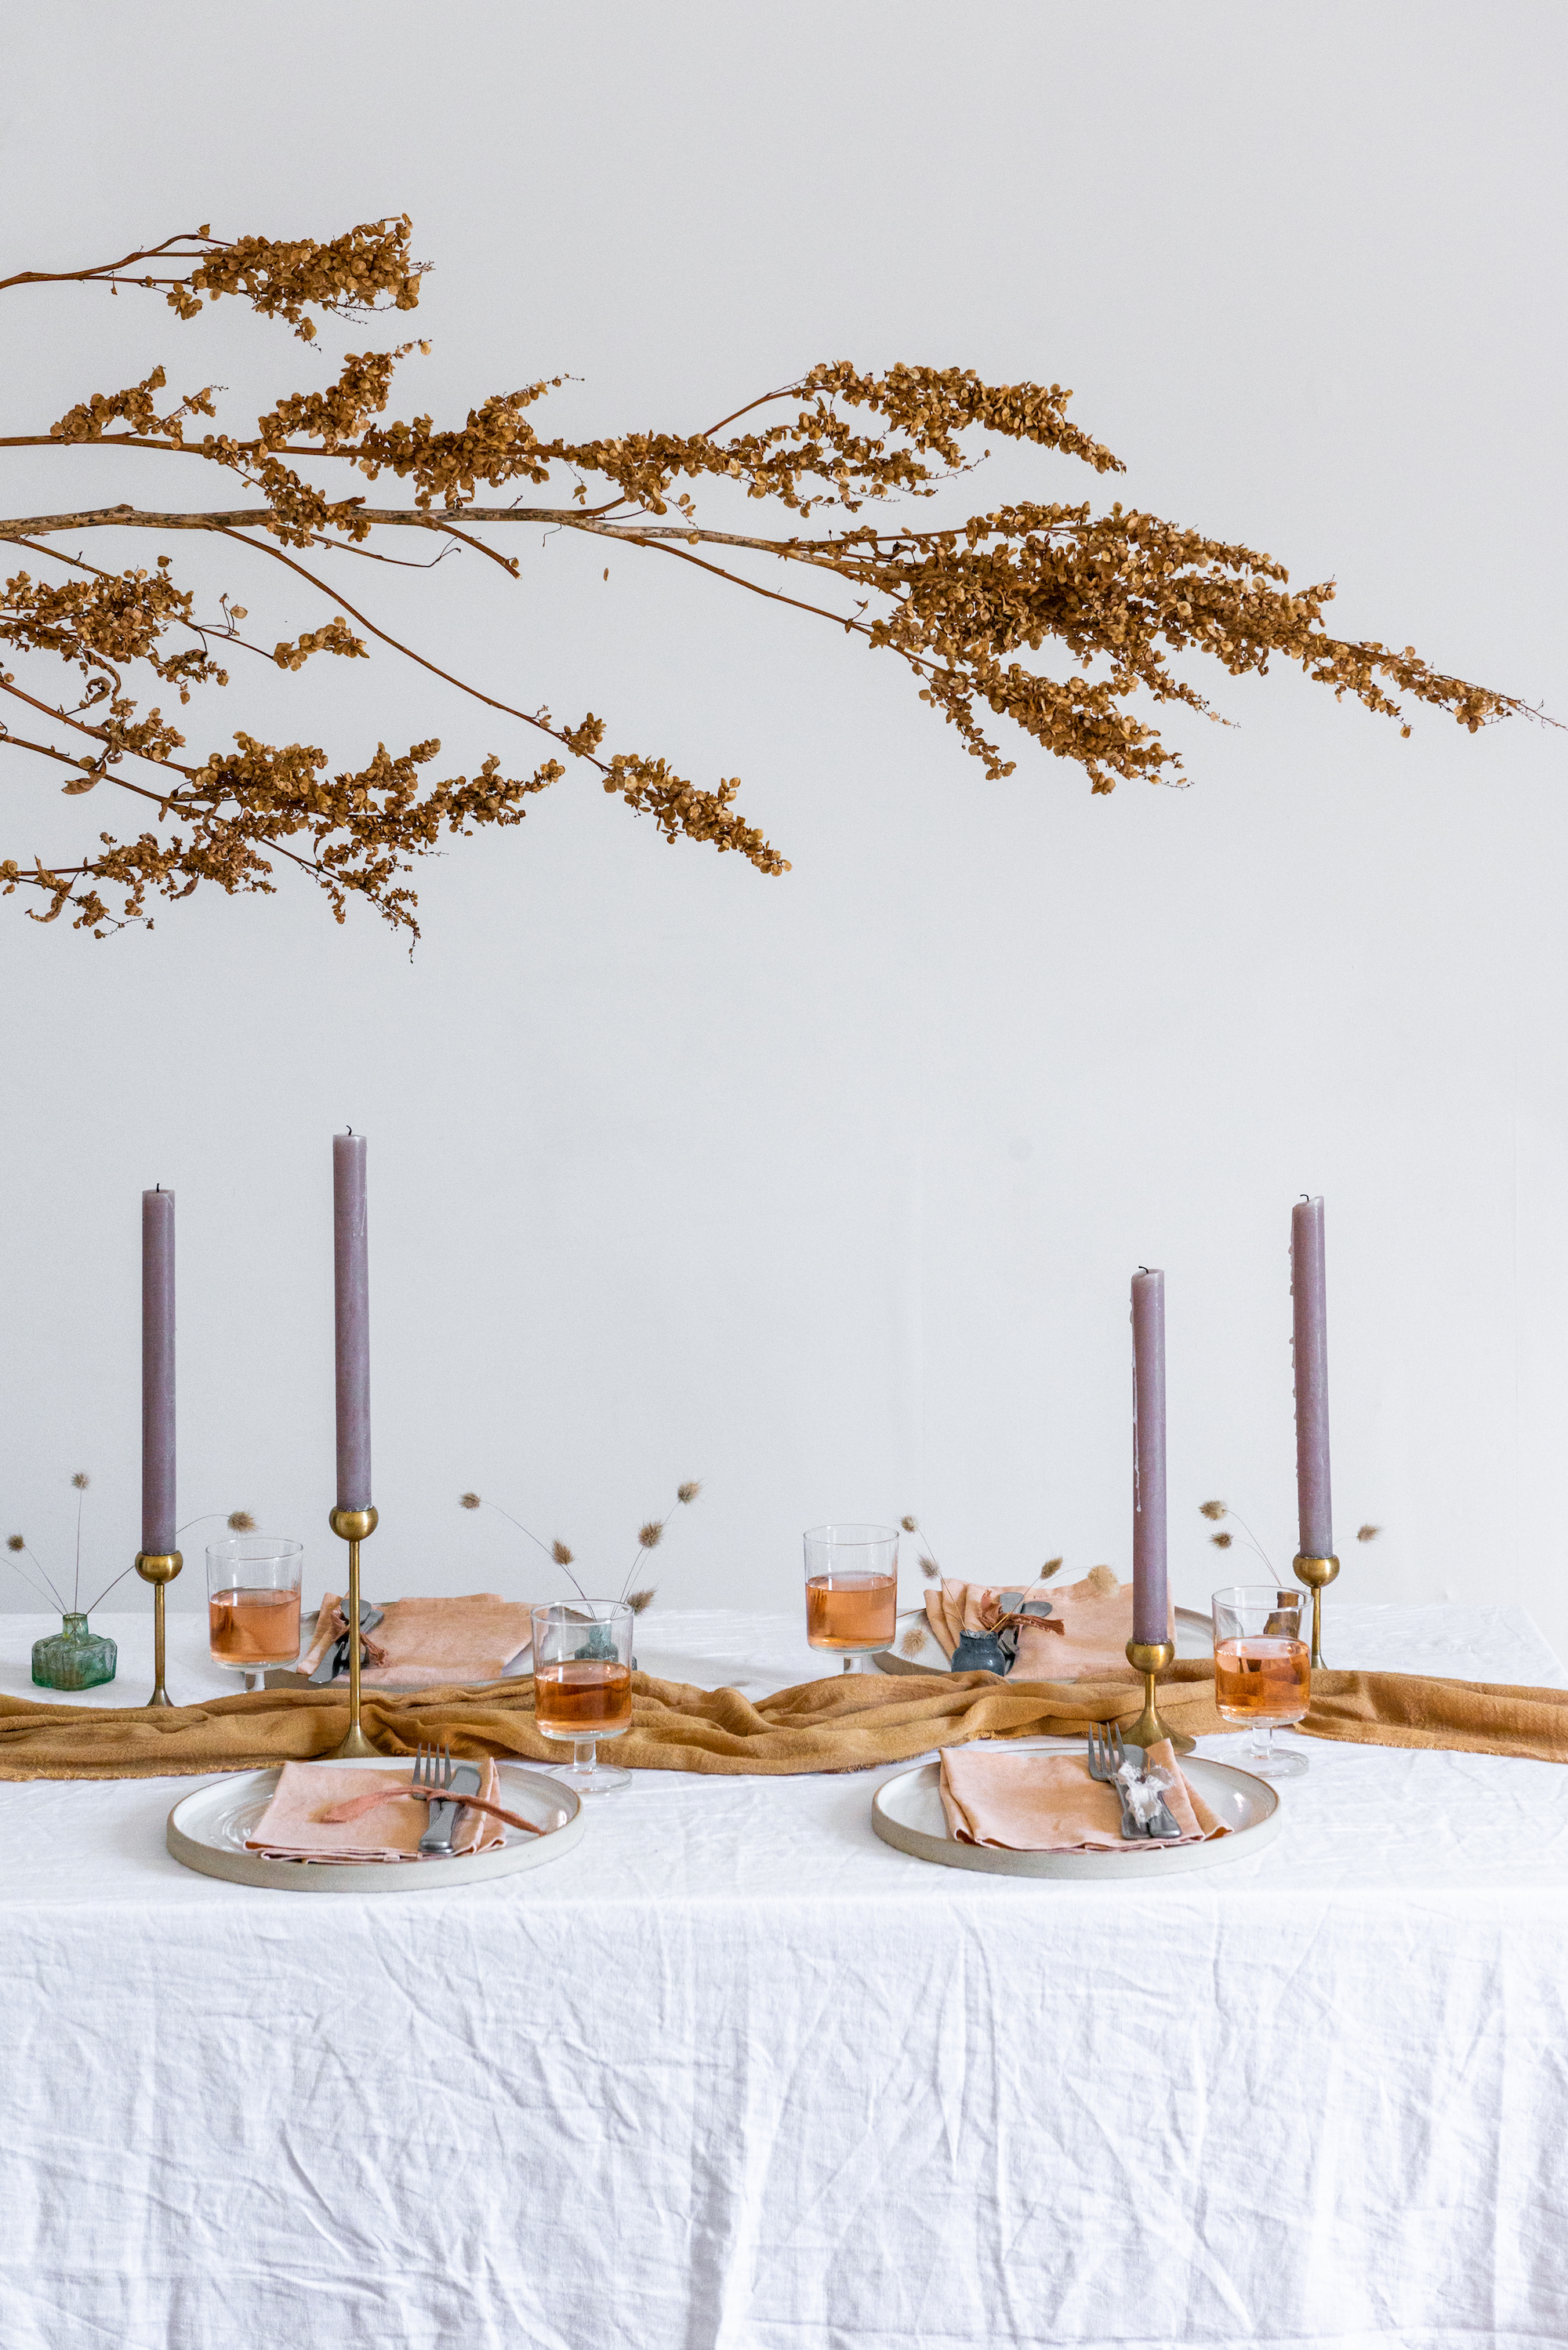 Autumn table, dried flowers, table styling, table setting ideas, how to lay a stylish table, how to lay a table, dinner party decorations, peach and lilac colours, tonal table, handmade plates, naturally dyed linen, rustic candles, dried flower arrangement, minimal table , simple table, DIY table styling, How to style a table, how to host a stylish gathering | HannahBullivant.com